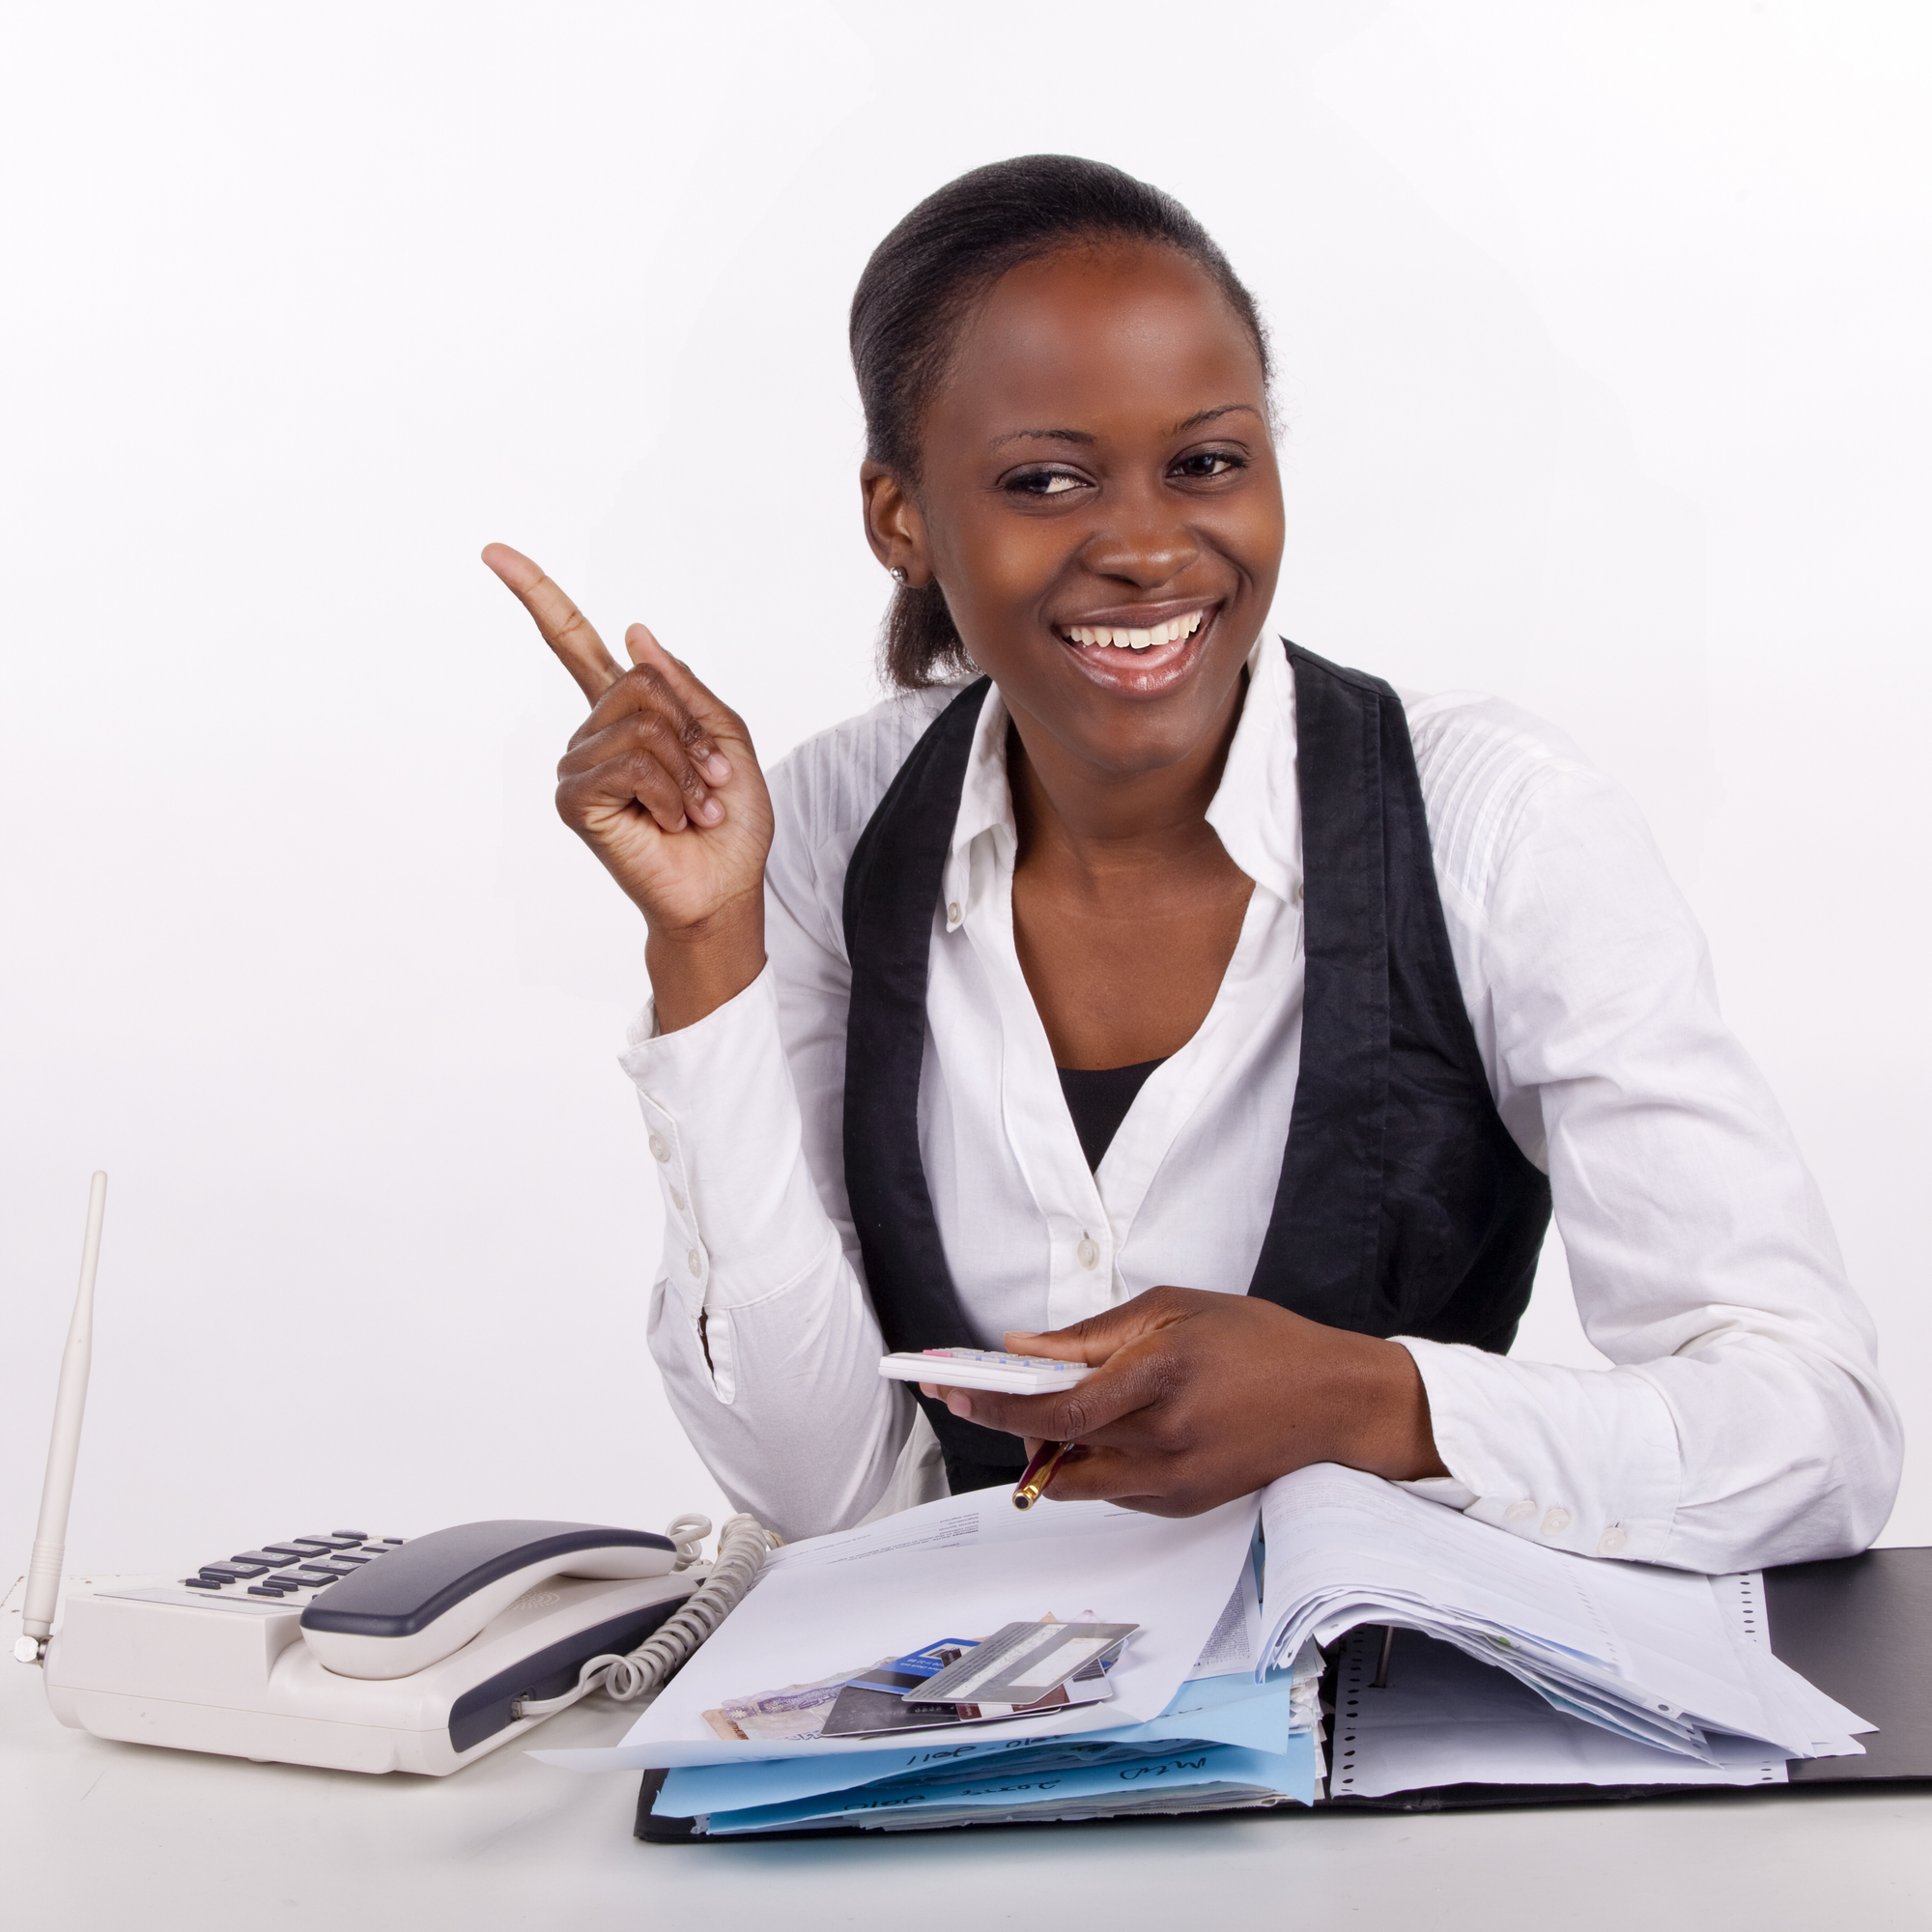 Young South African office worker